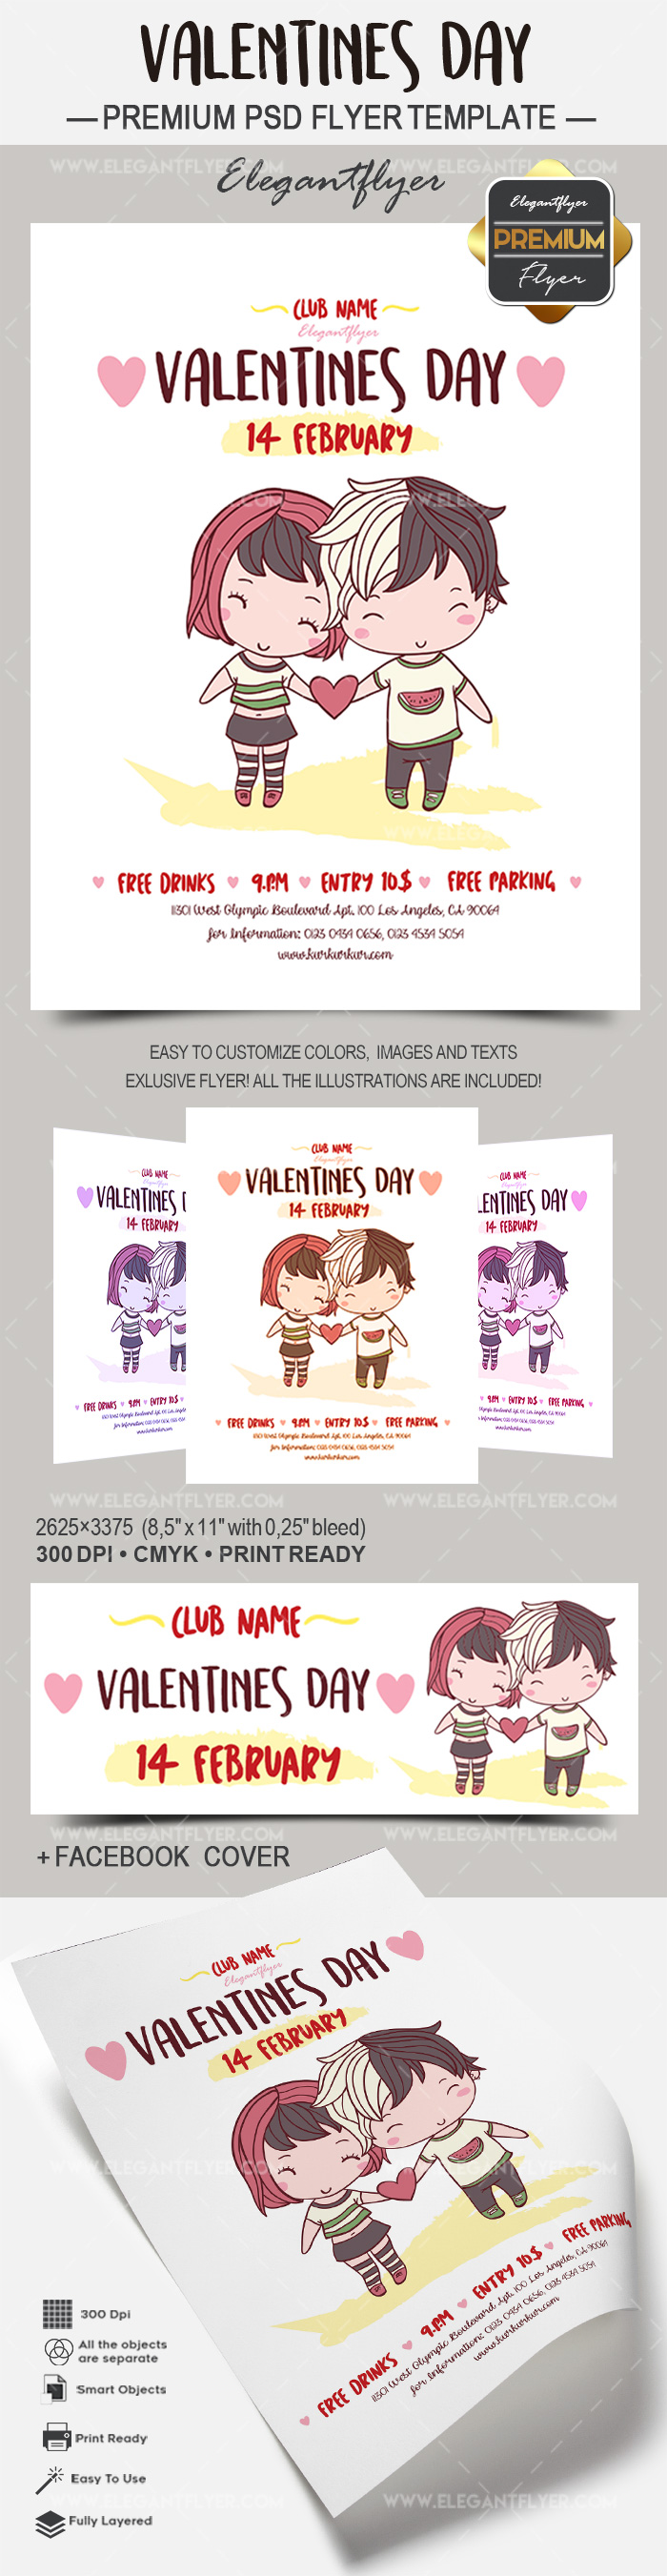 PSD Valentine Day for Lovers Template